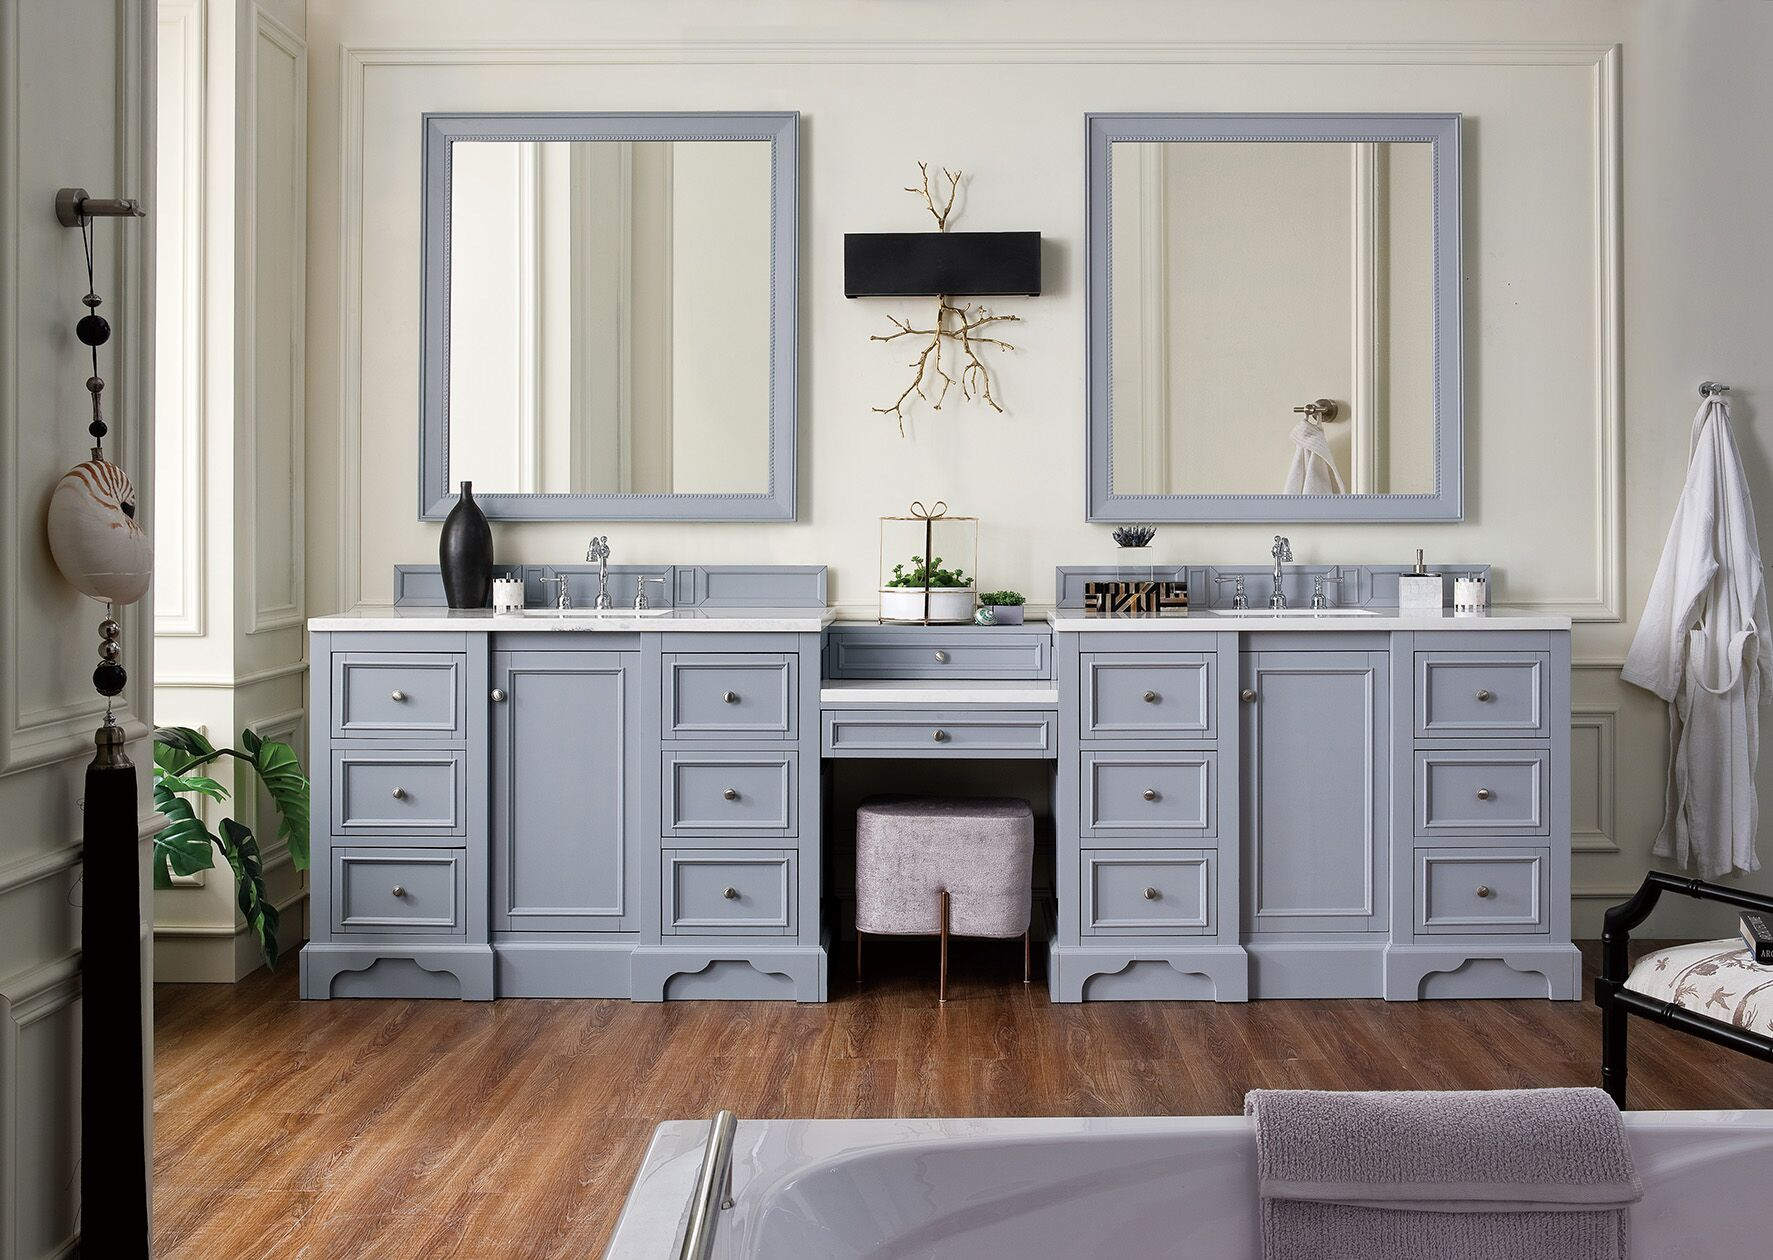 wholesale discount factory direct vanity cabinets indianapolis, zionsville, carmel indiana